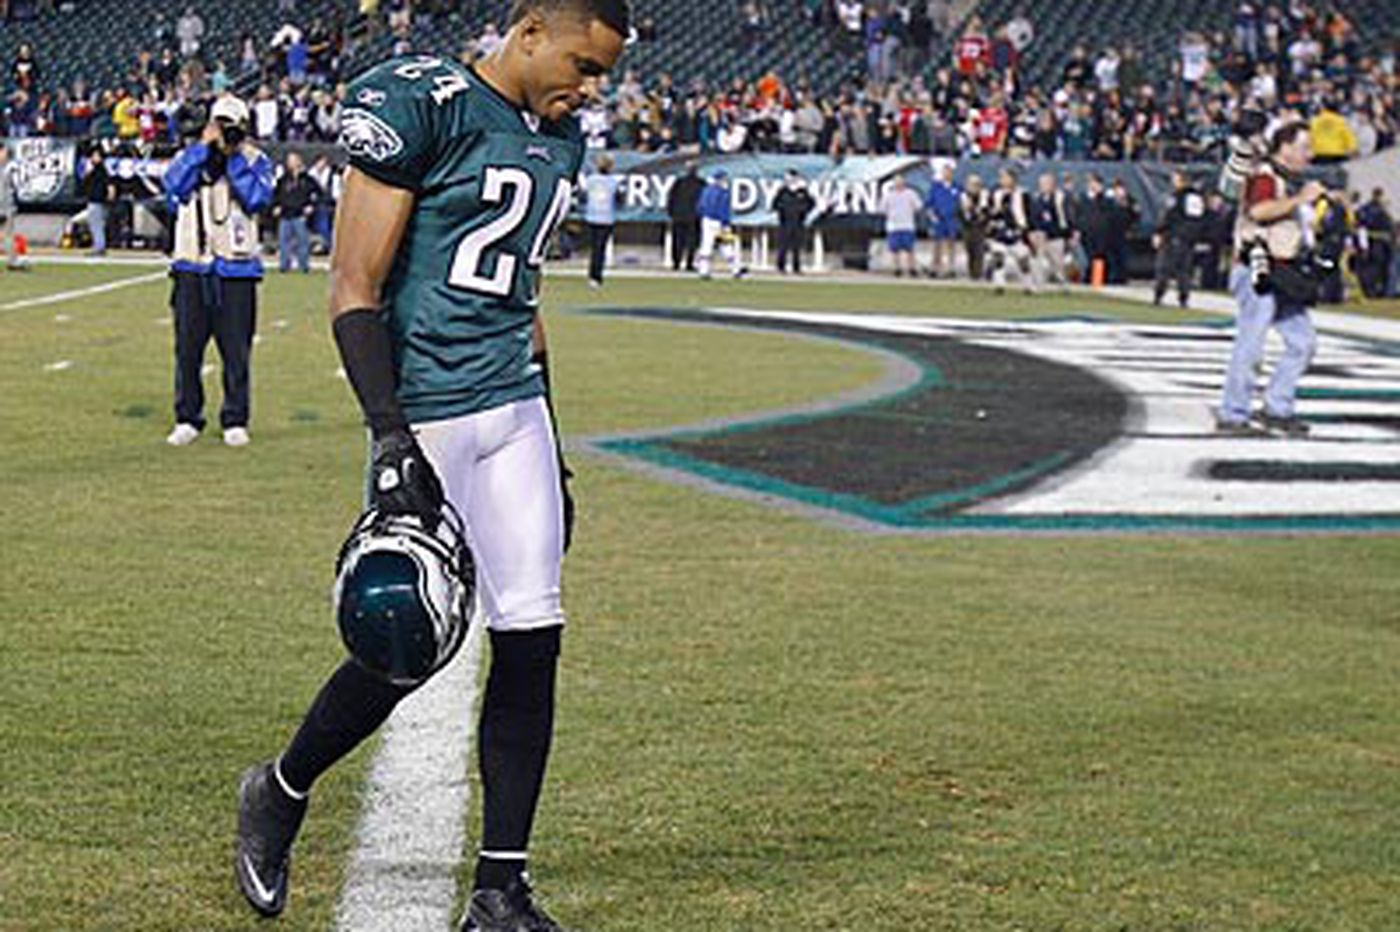 Could voodoo, curses, or karma explain Eagles' puzzling home record?